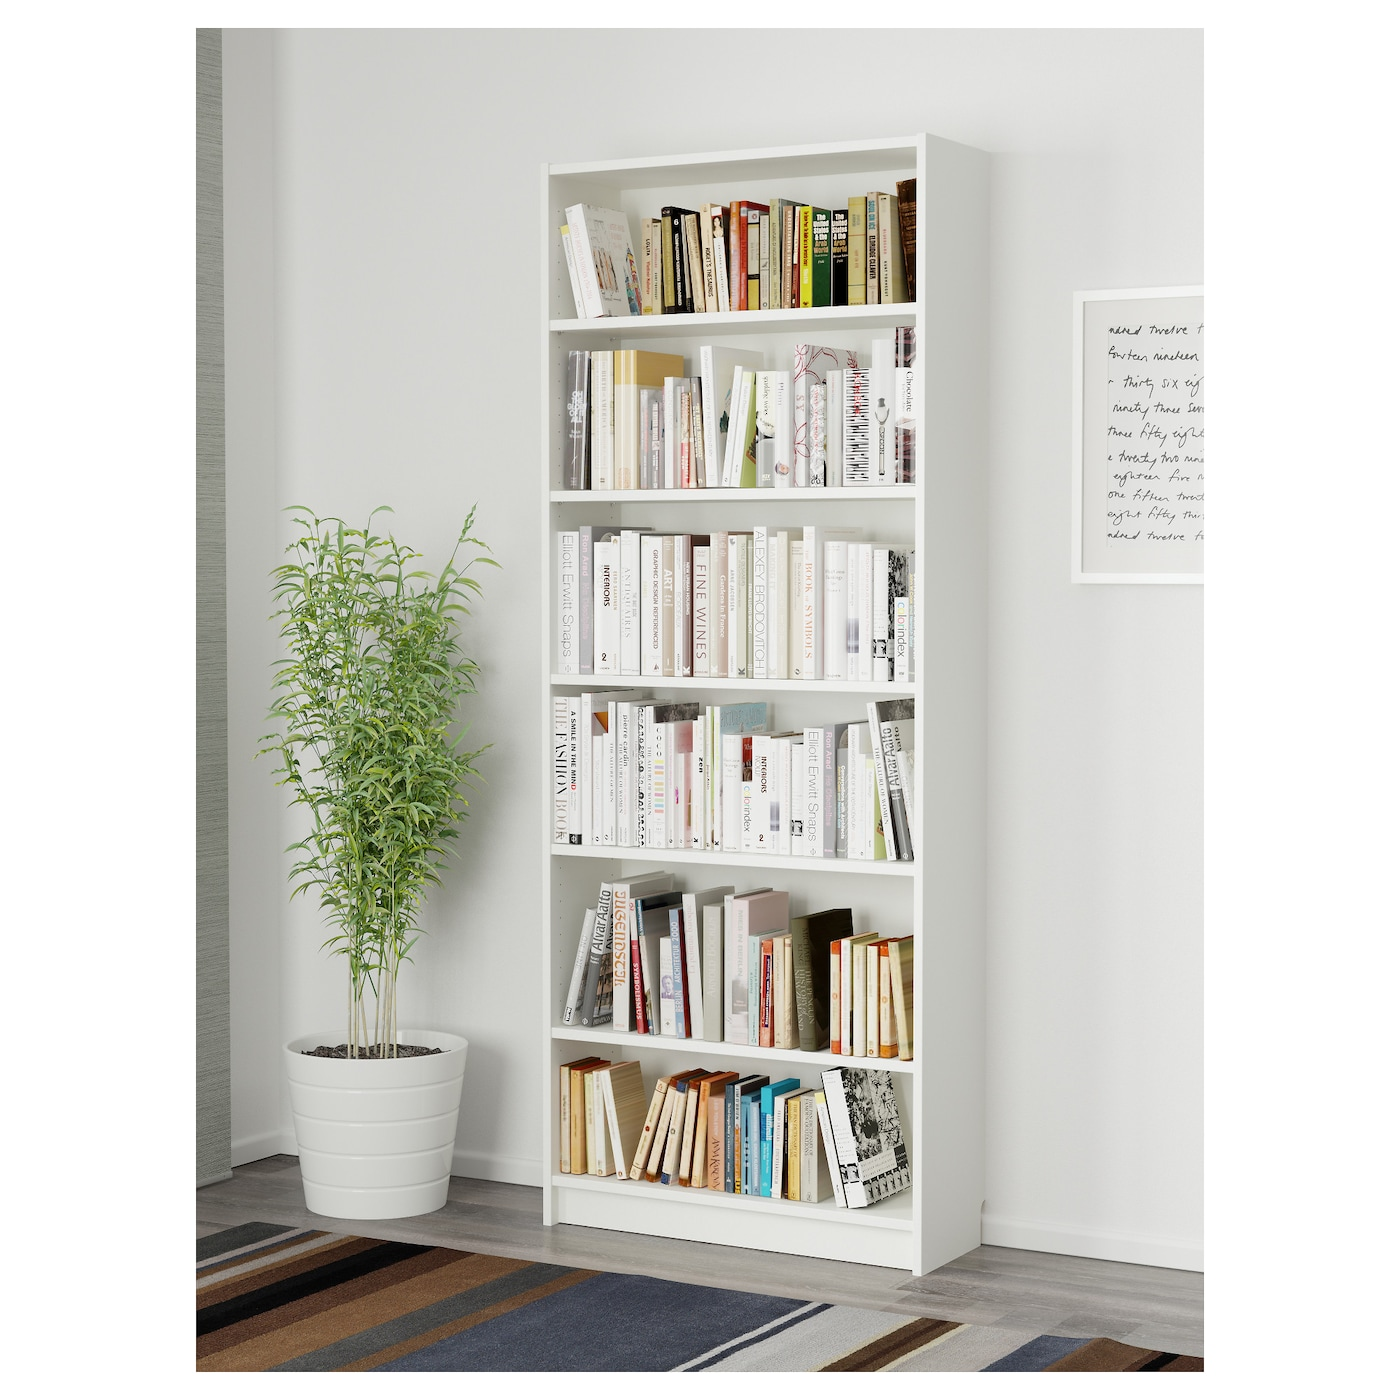 Image of: Billy Bookcase White 31 1 2x11x79 1 2 Ikea